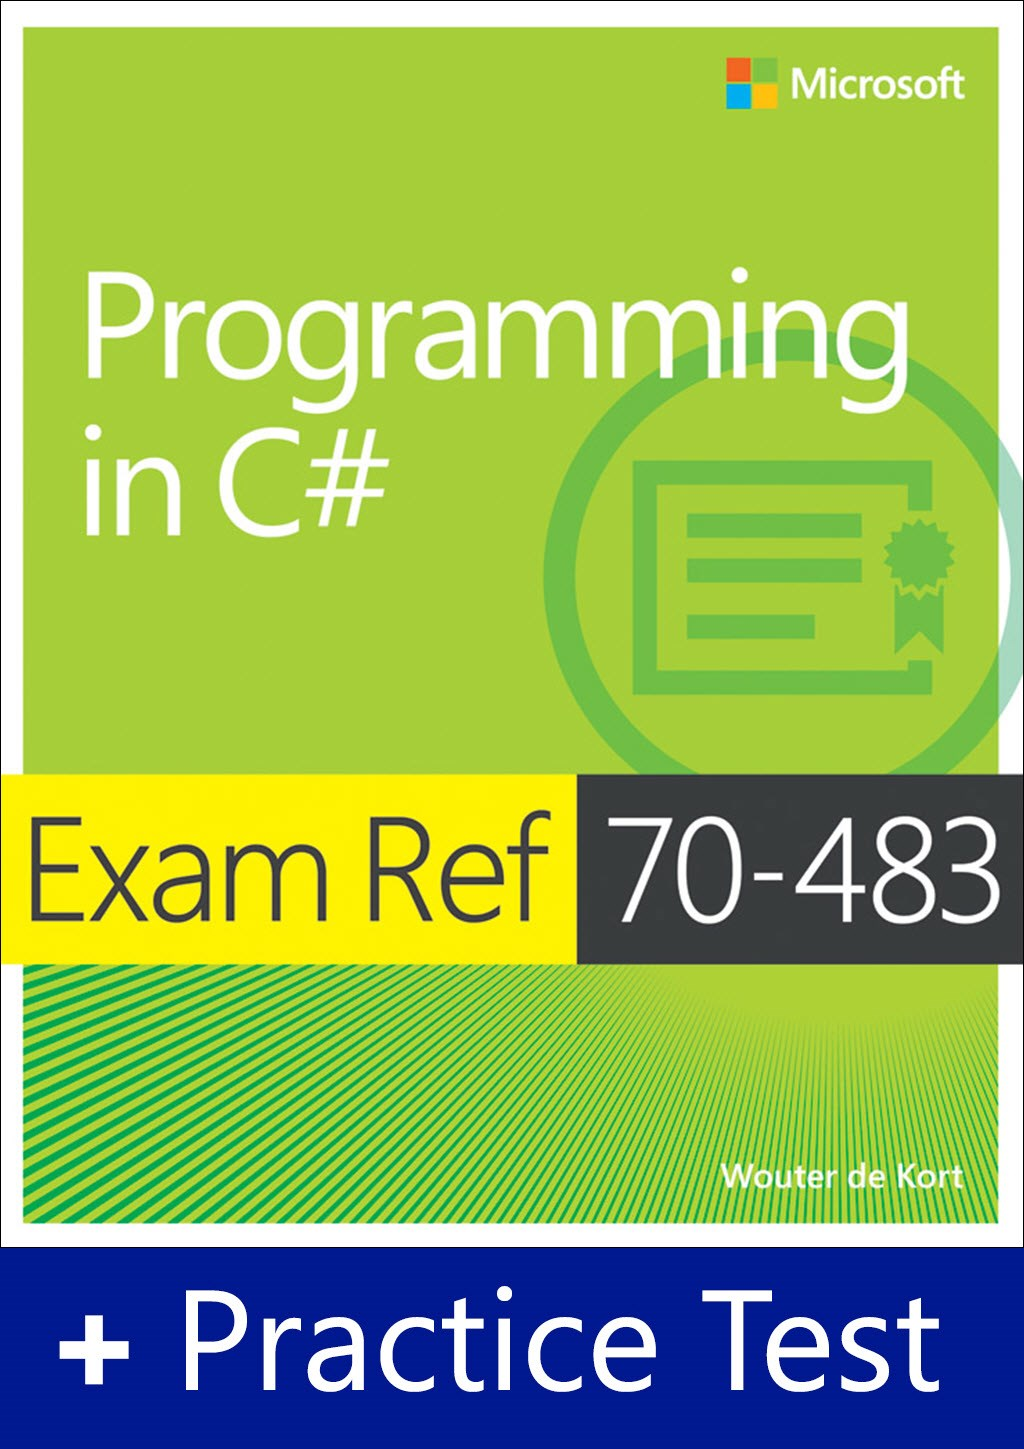 Exam Ref 70-483 Programming in C# with Practice Test